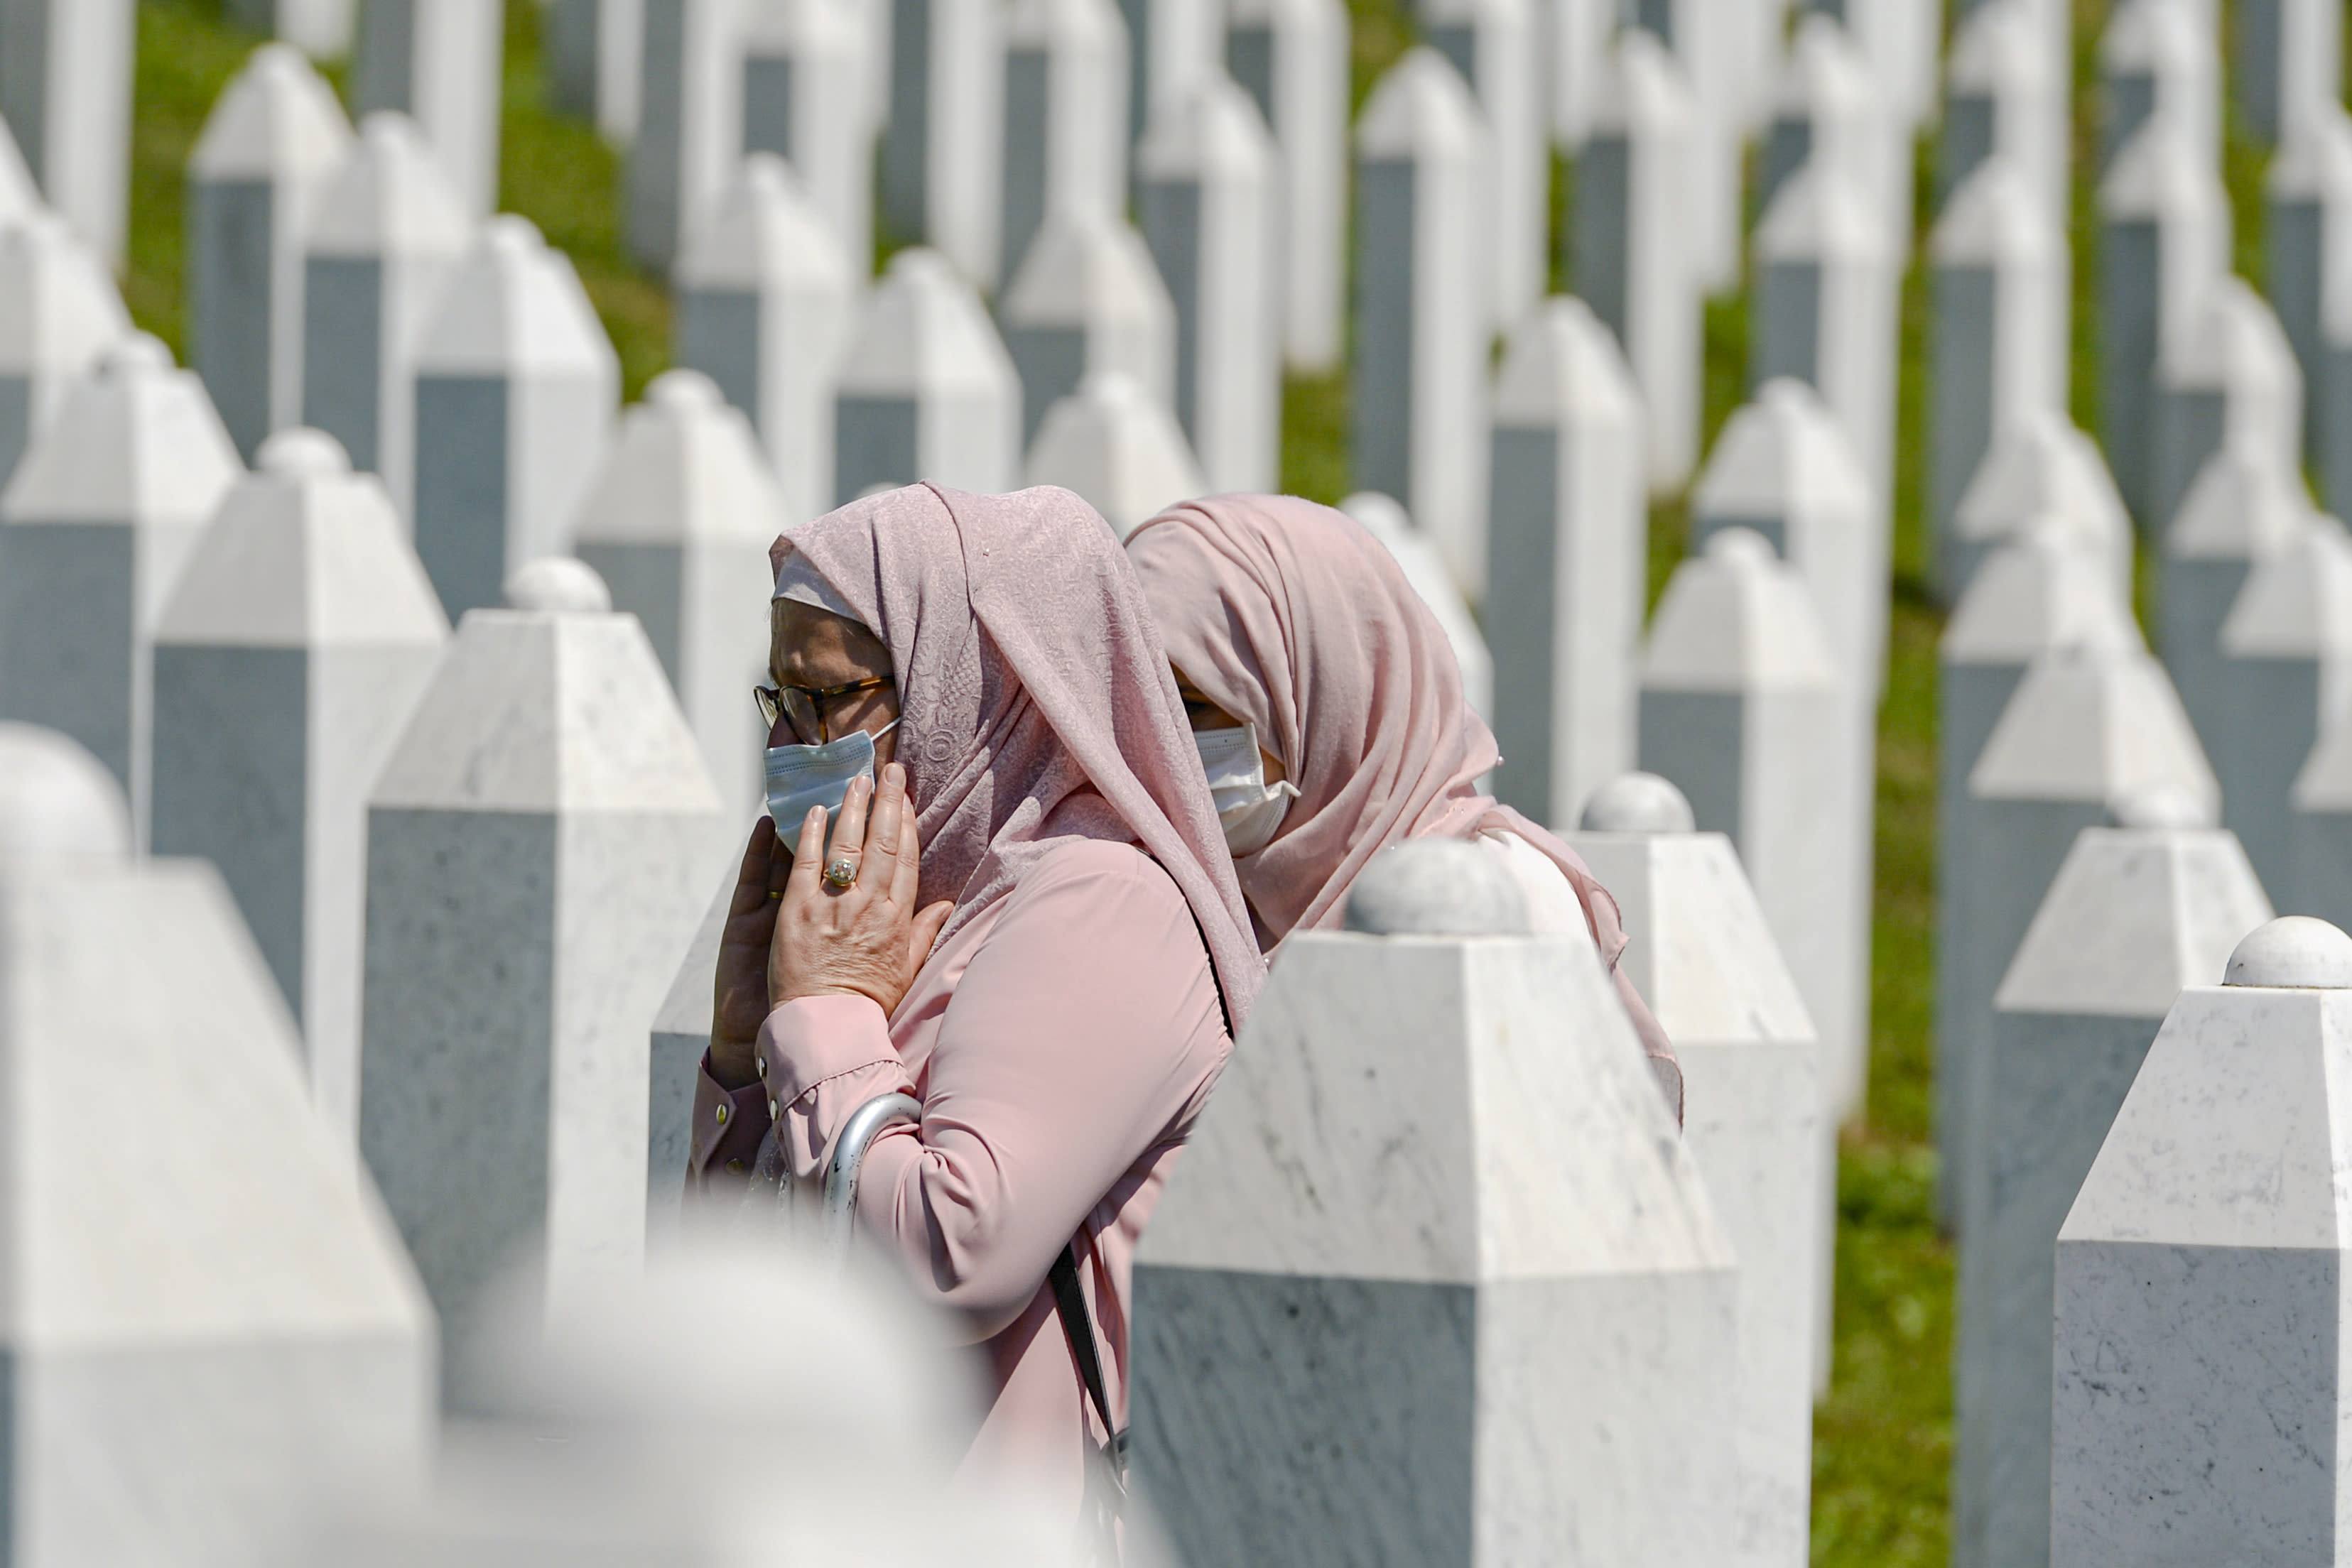 Women walk between grave stones in Potocari, near Srebrenica, Bosnia, Saturday, July 11, 2020. Mourners converged on the eastern Bosnian town of Srebrenica for the 25th anniversary of the country's worst carnage during the 1992-95 war and the only crime in Europe since World War II that has been declared a genocide. (AP Photo/Kemal Softic)